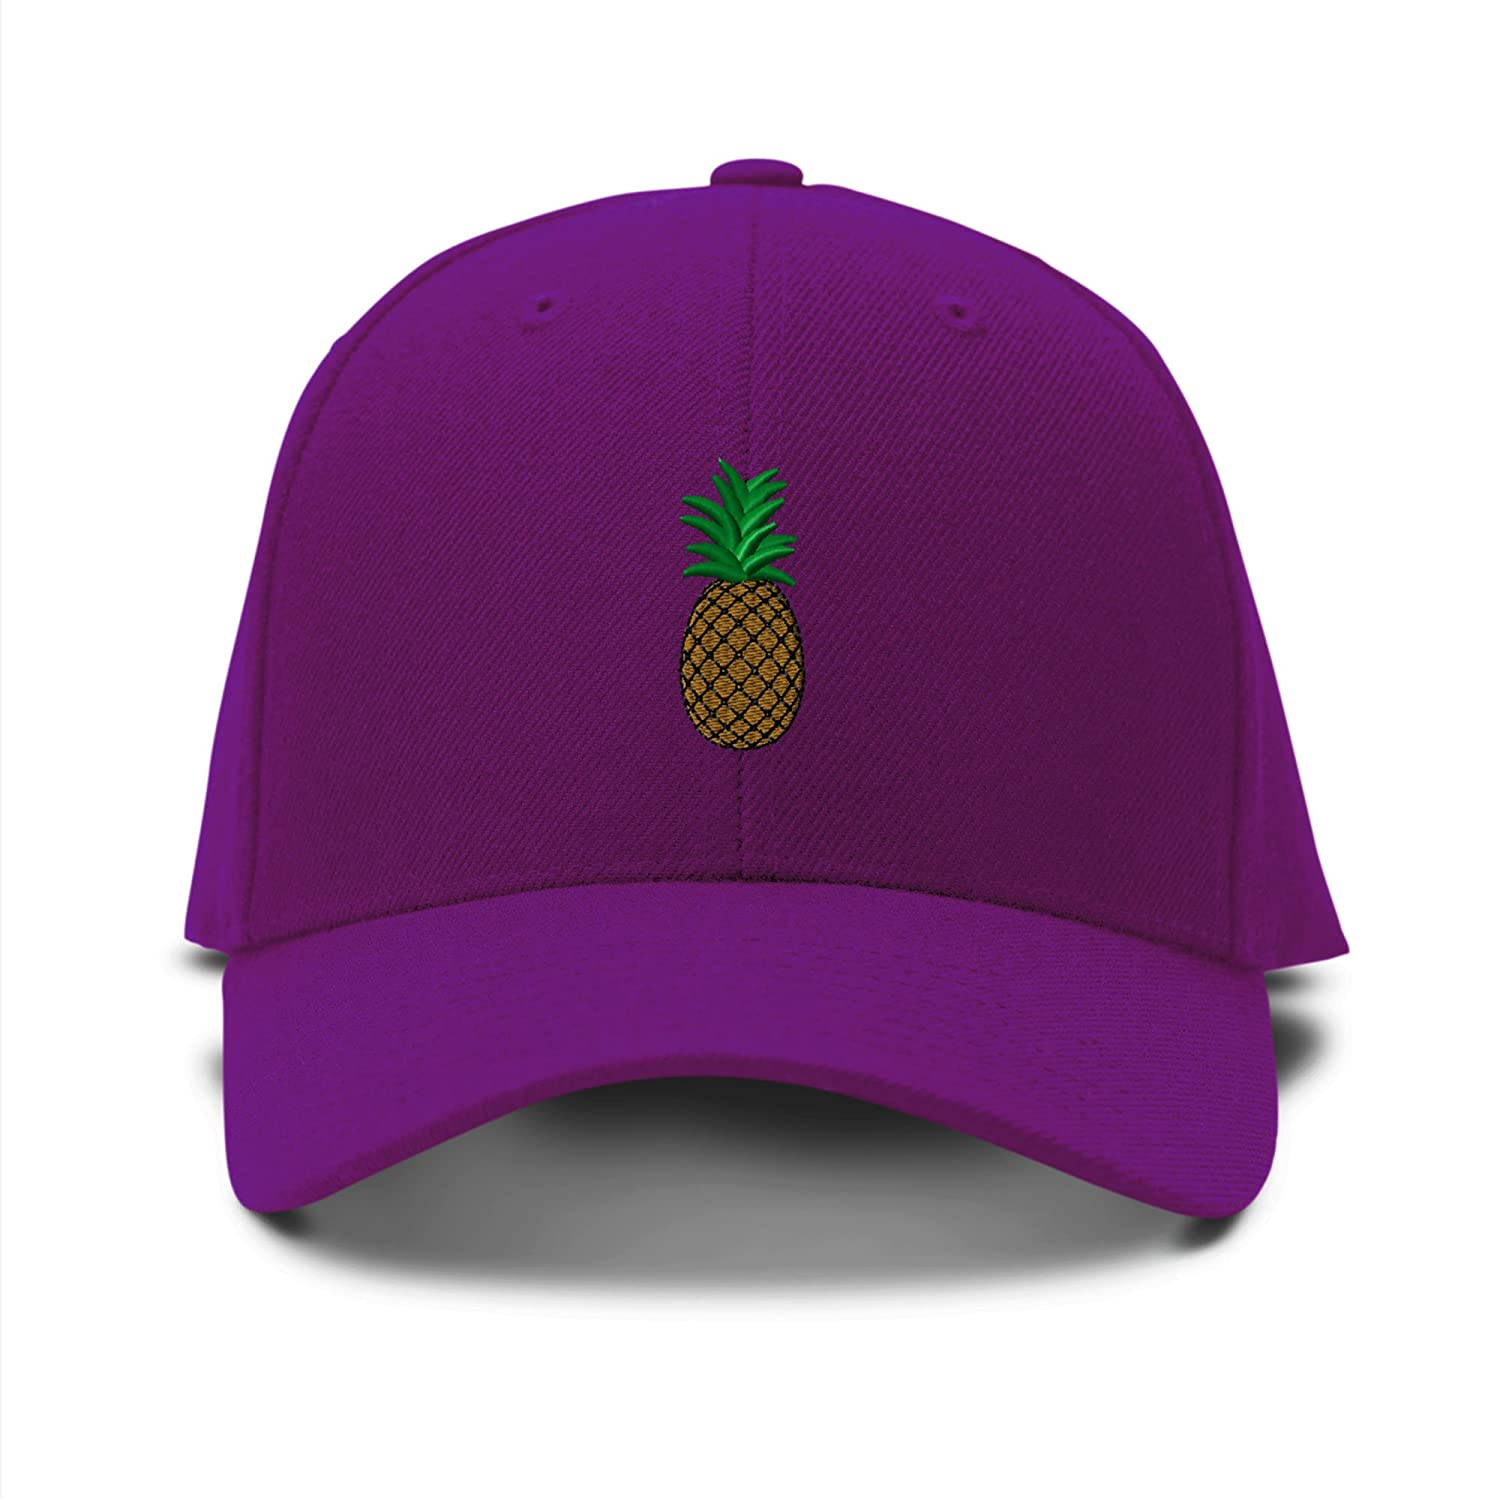 Amazon: Pineapple Embroidery Embroidered Adjustable Hat Baseball Cap  Black: Clothing